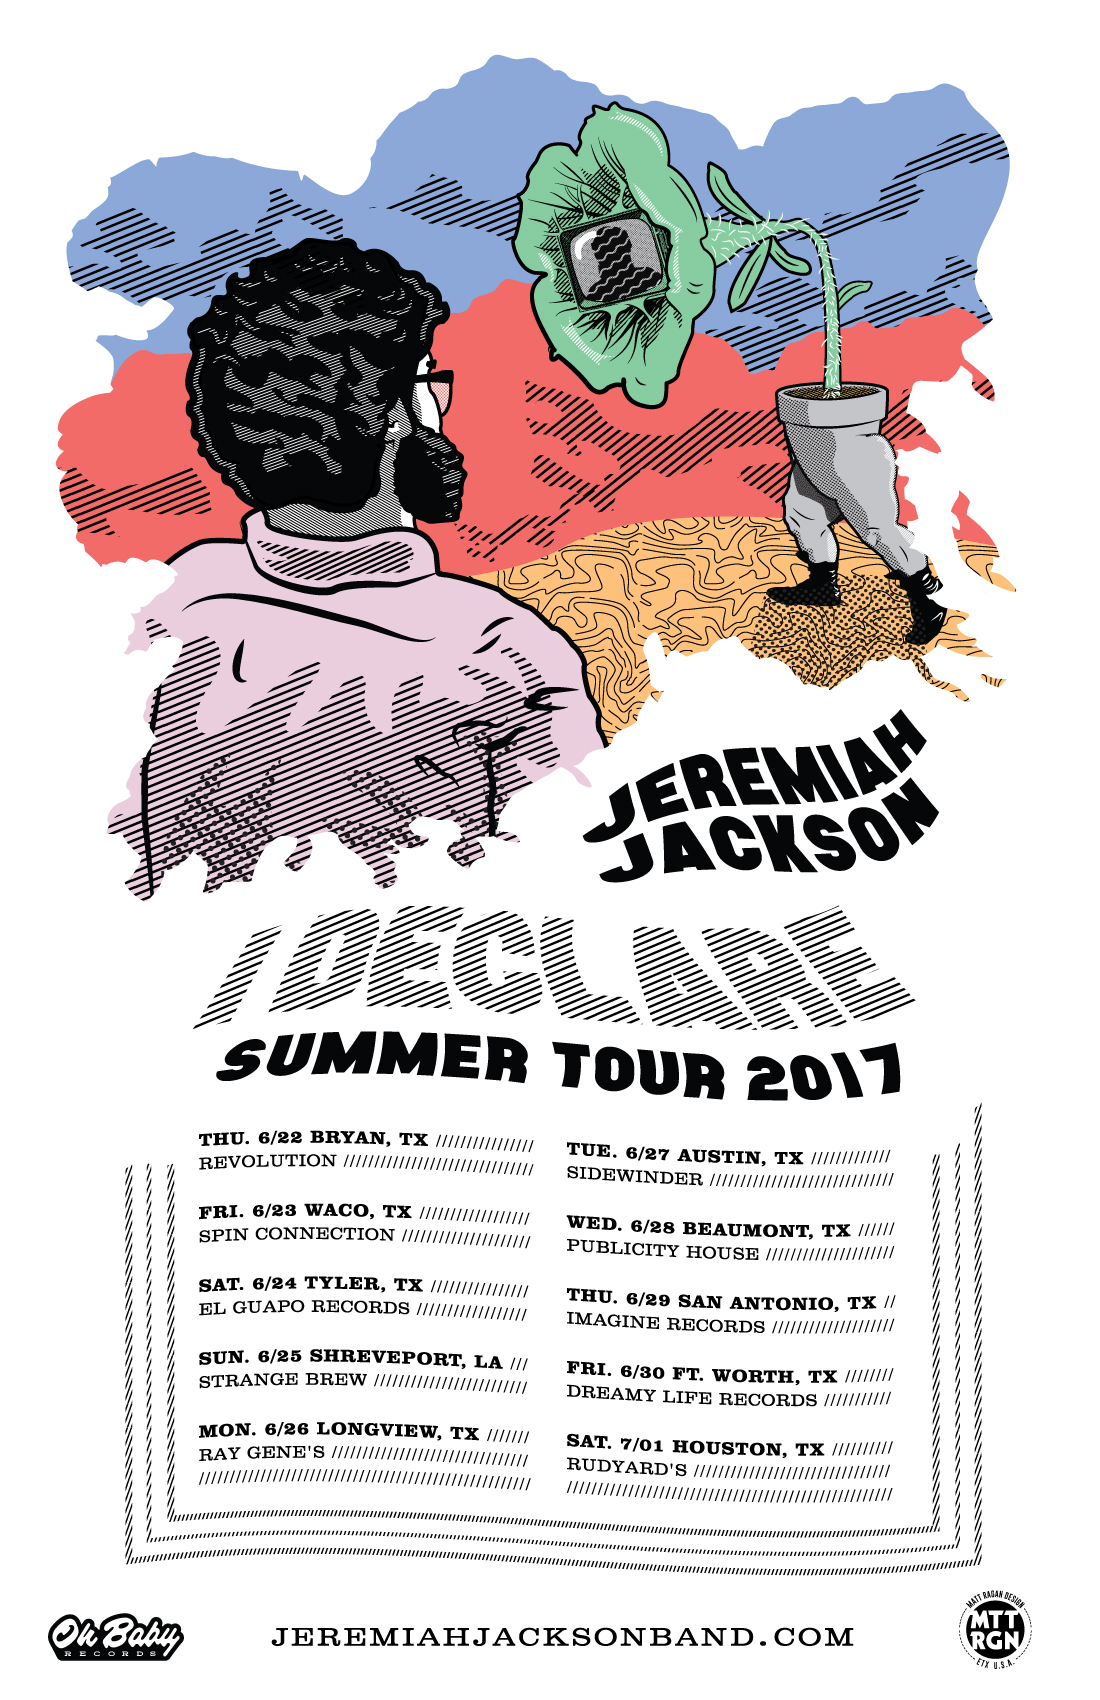 Tour Poster courtesy of Jeremiah Jackson - Album & Tour Poster Art by Matt Ragan